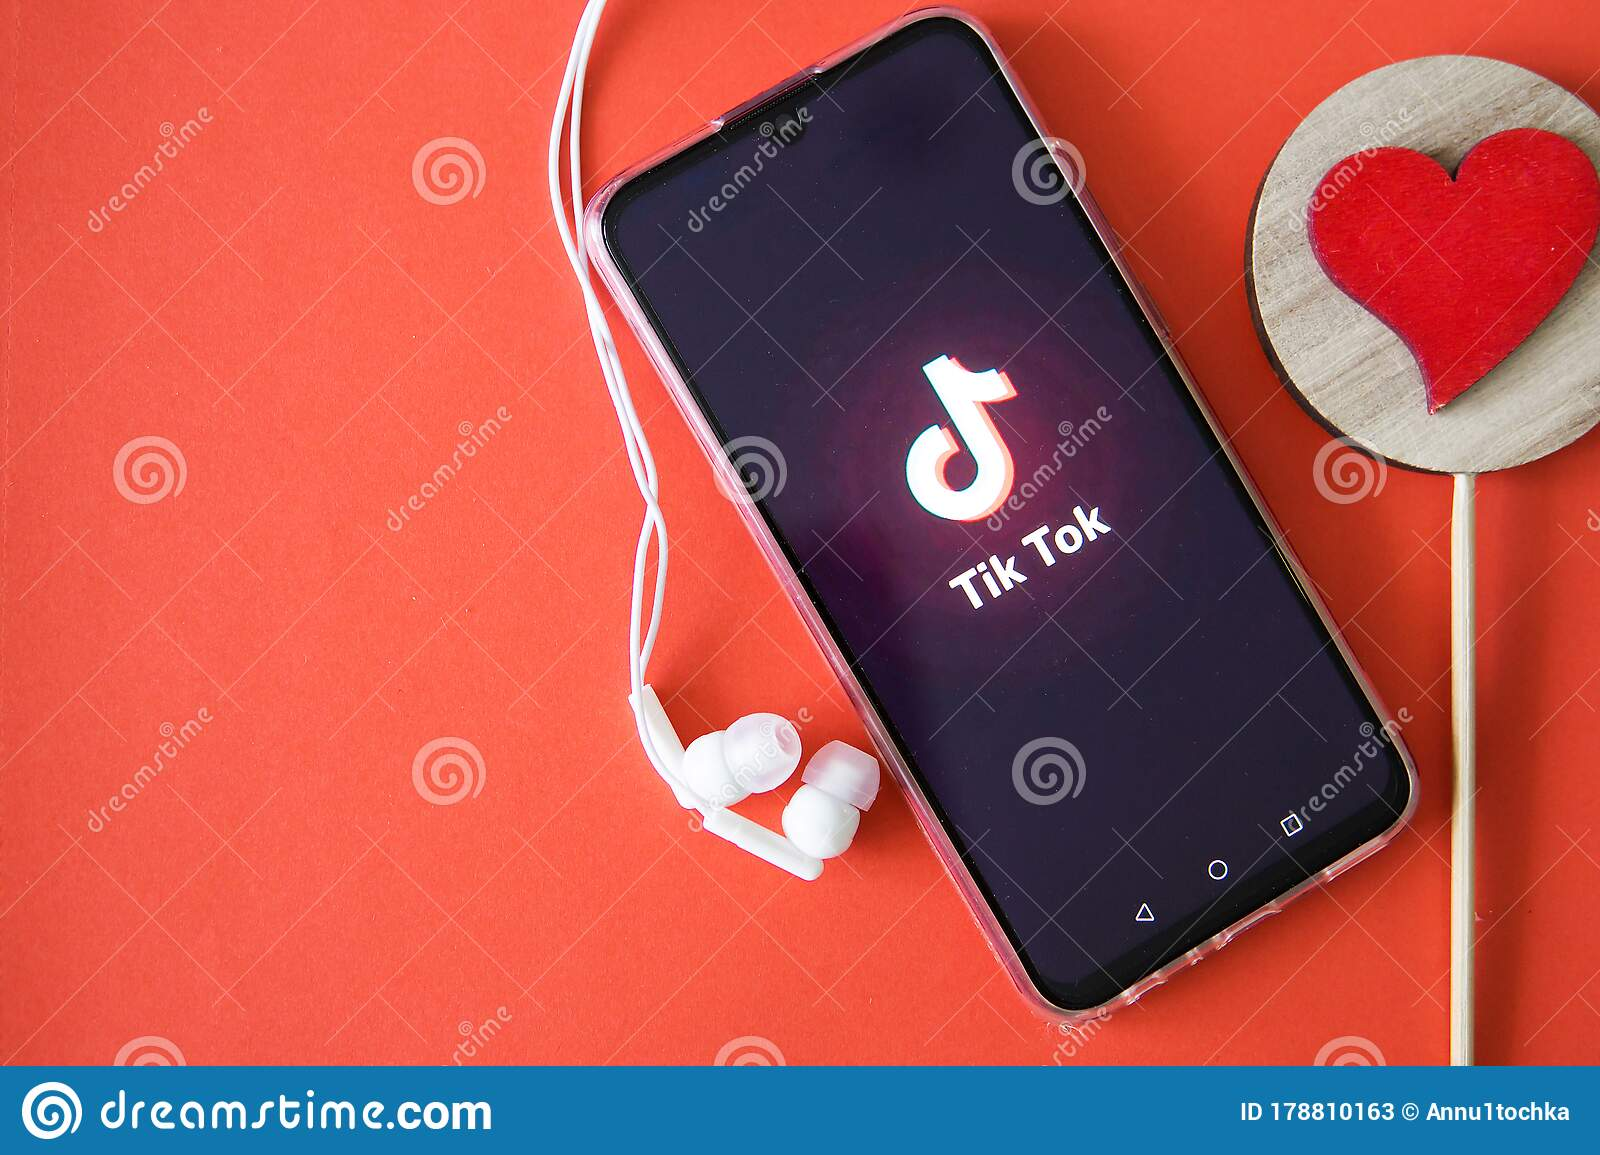 Tver Russia April 9 2020 The Tik Tok Logo On The Smartphone Screen On A Red Background With Headphones Tick Tok Icon Logo Of Editorial Stock Photo Image Of Covid19 Gadget 178810163